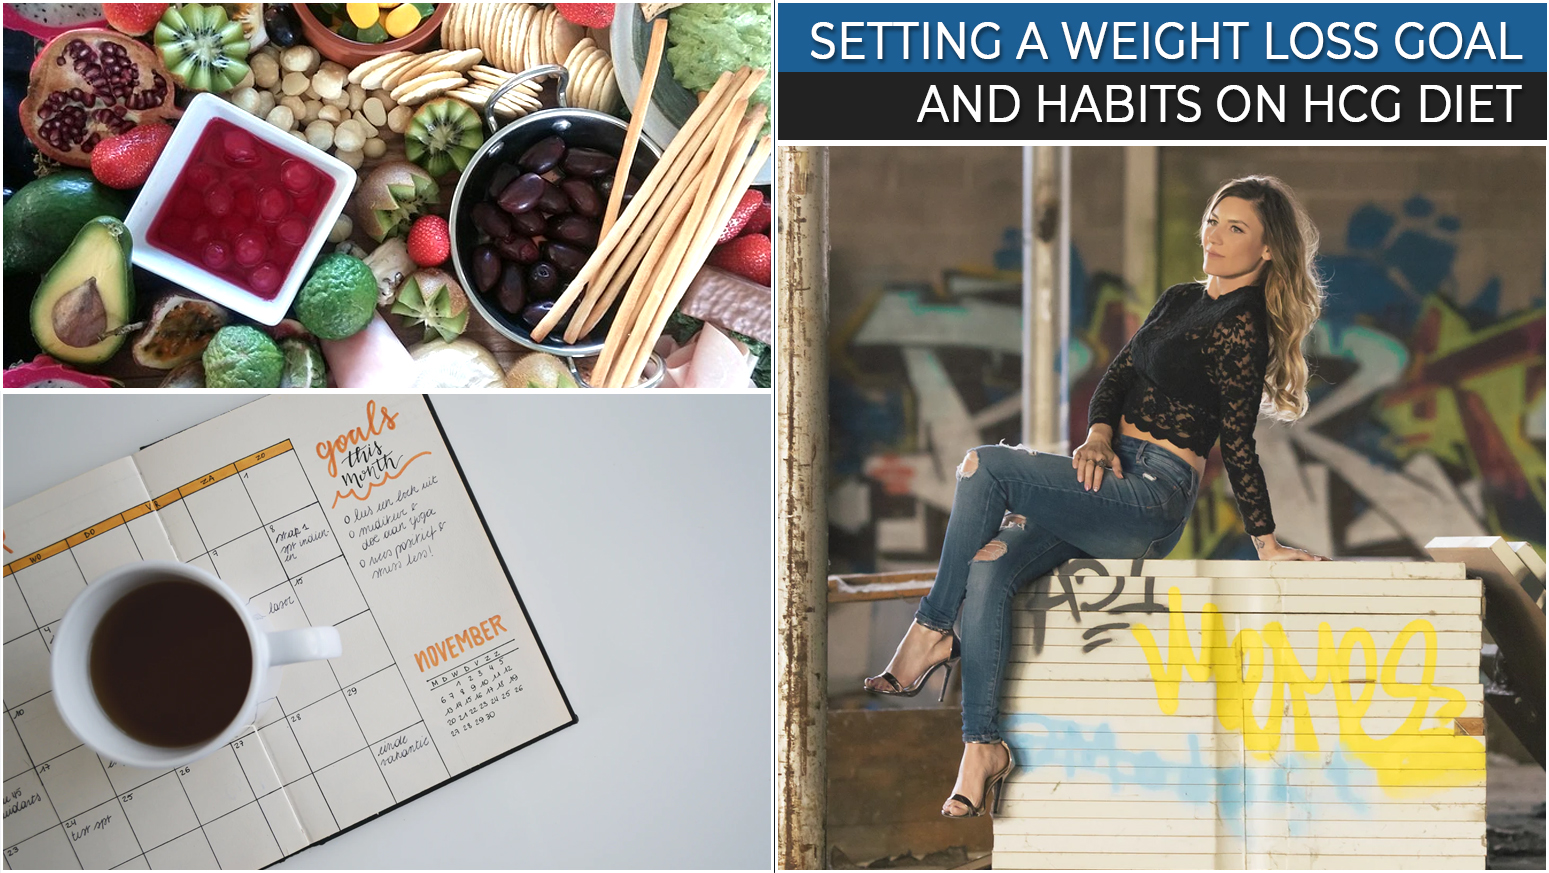 SETTING A WEIGHT LOSS GOAL AND HABITS ON HCG DIET